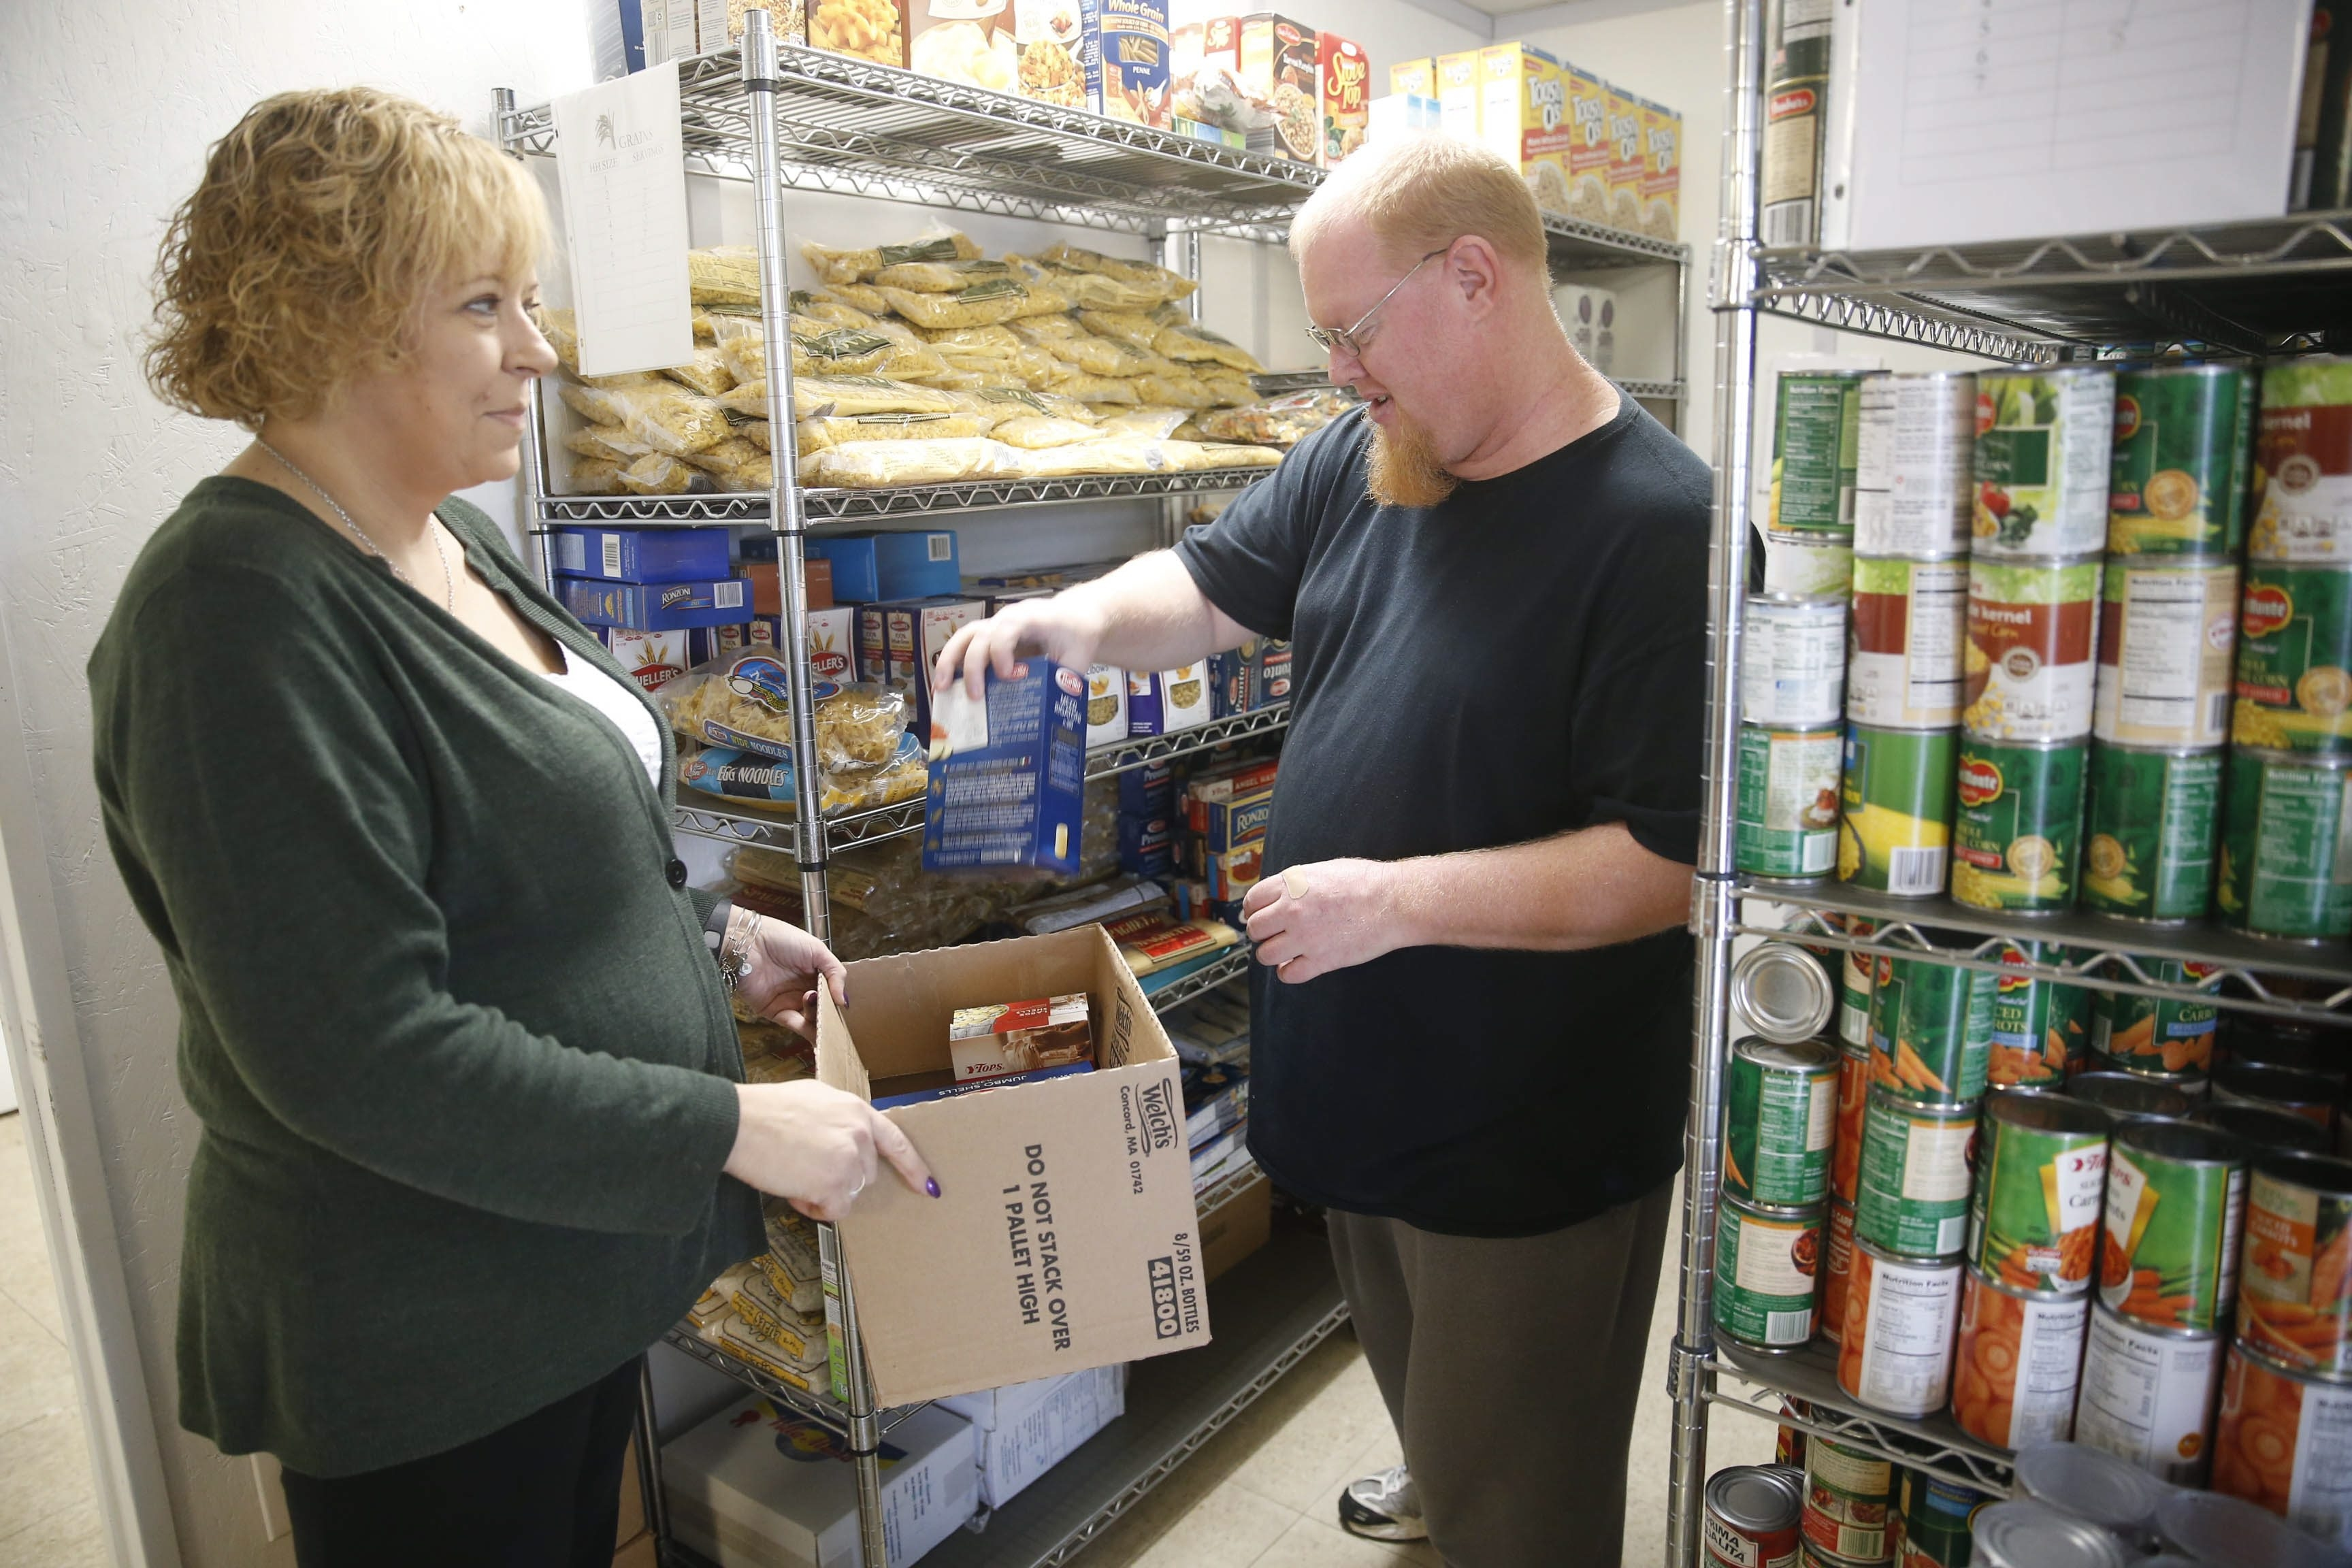 Administrator Joanne Whitney, left, and volunteer Robert Montgomery unpack supplies onto the shelves at the Care-n-Share Food Pantry in Ransomville, which feeds more than 200 families per month.